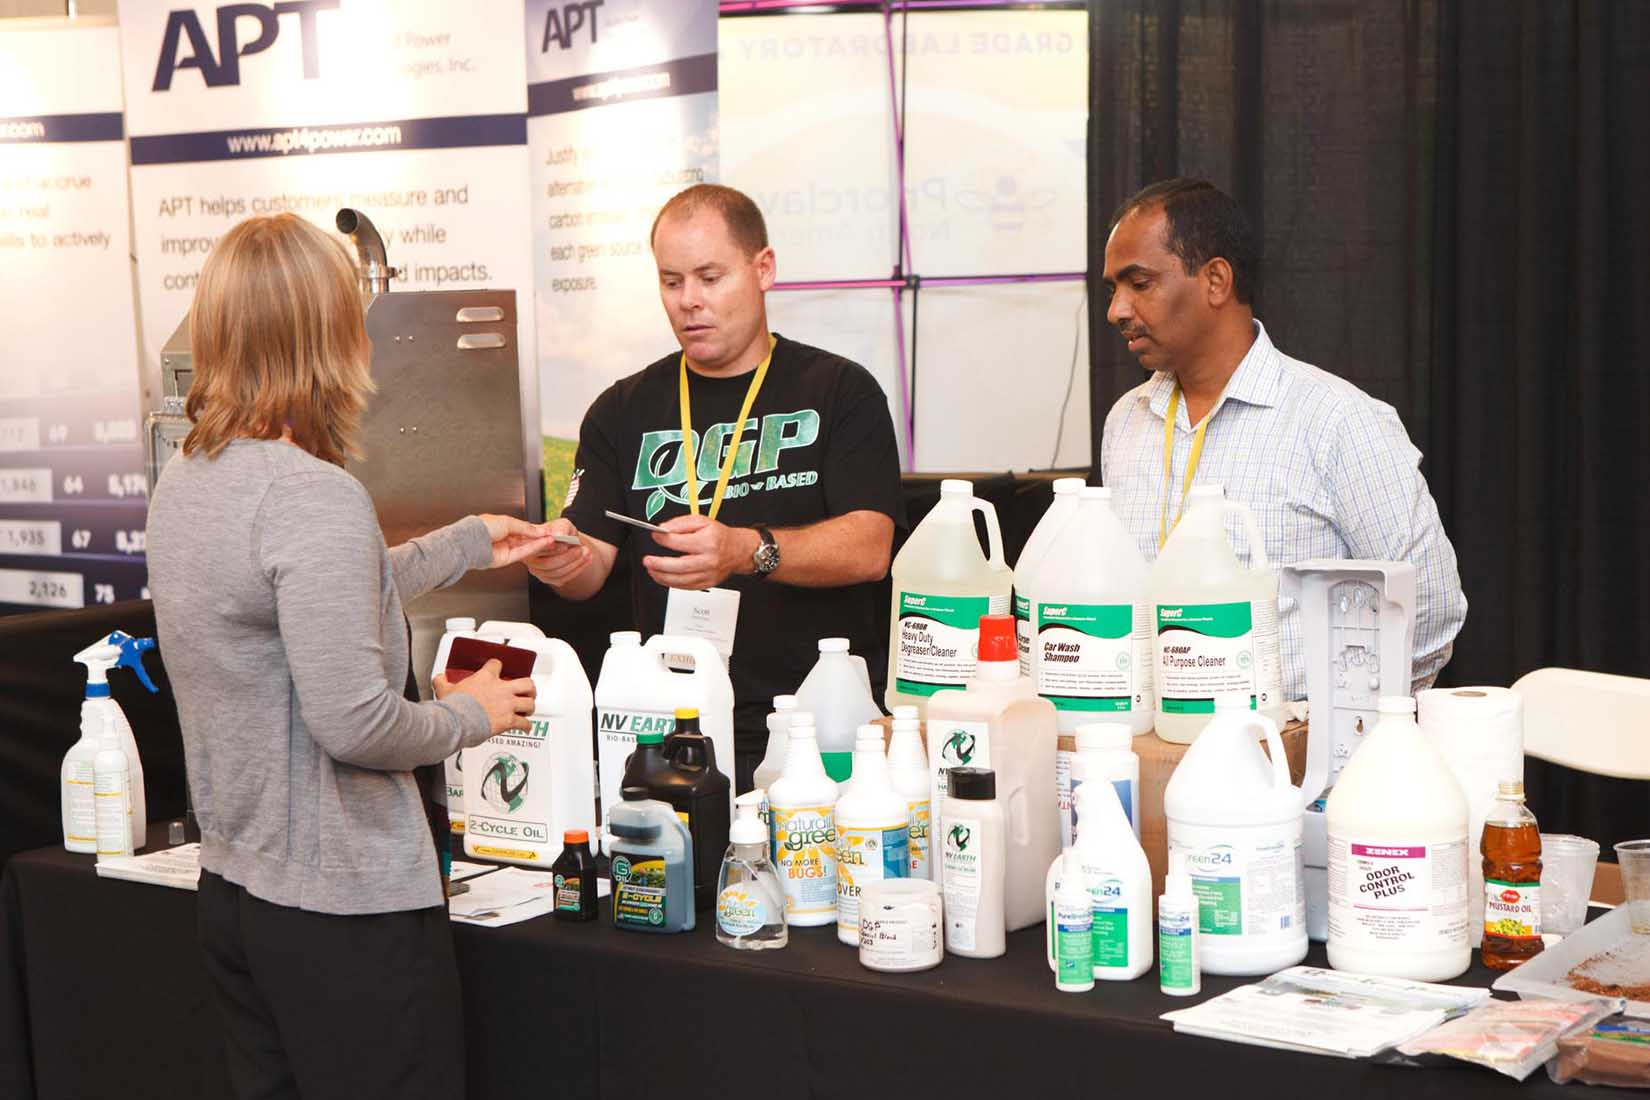 vendors at the seminar presenting their products